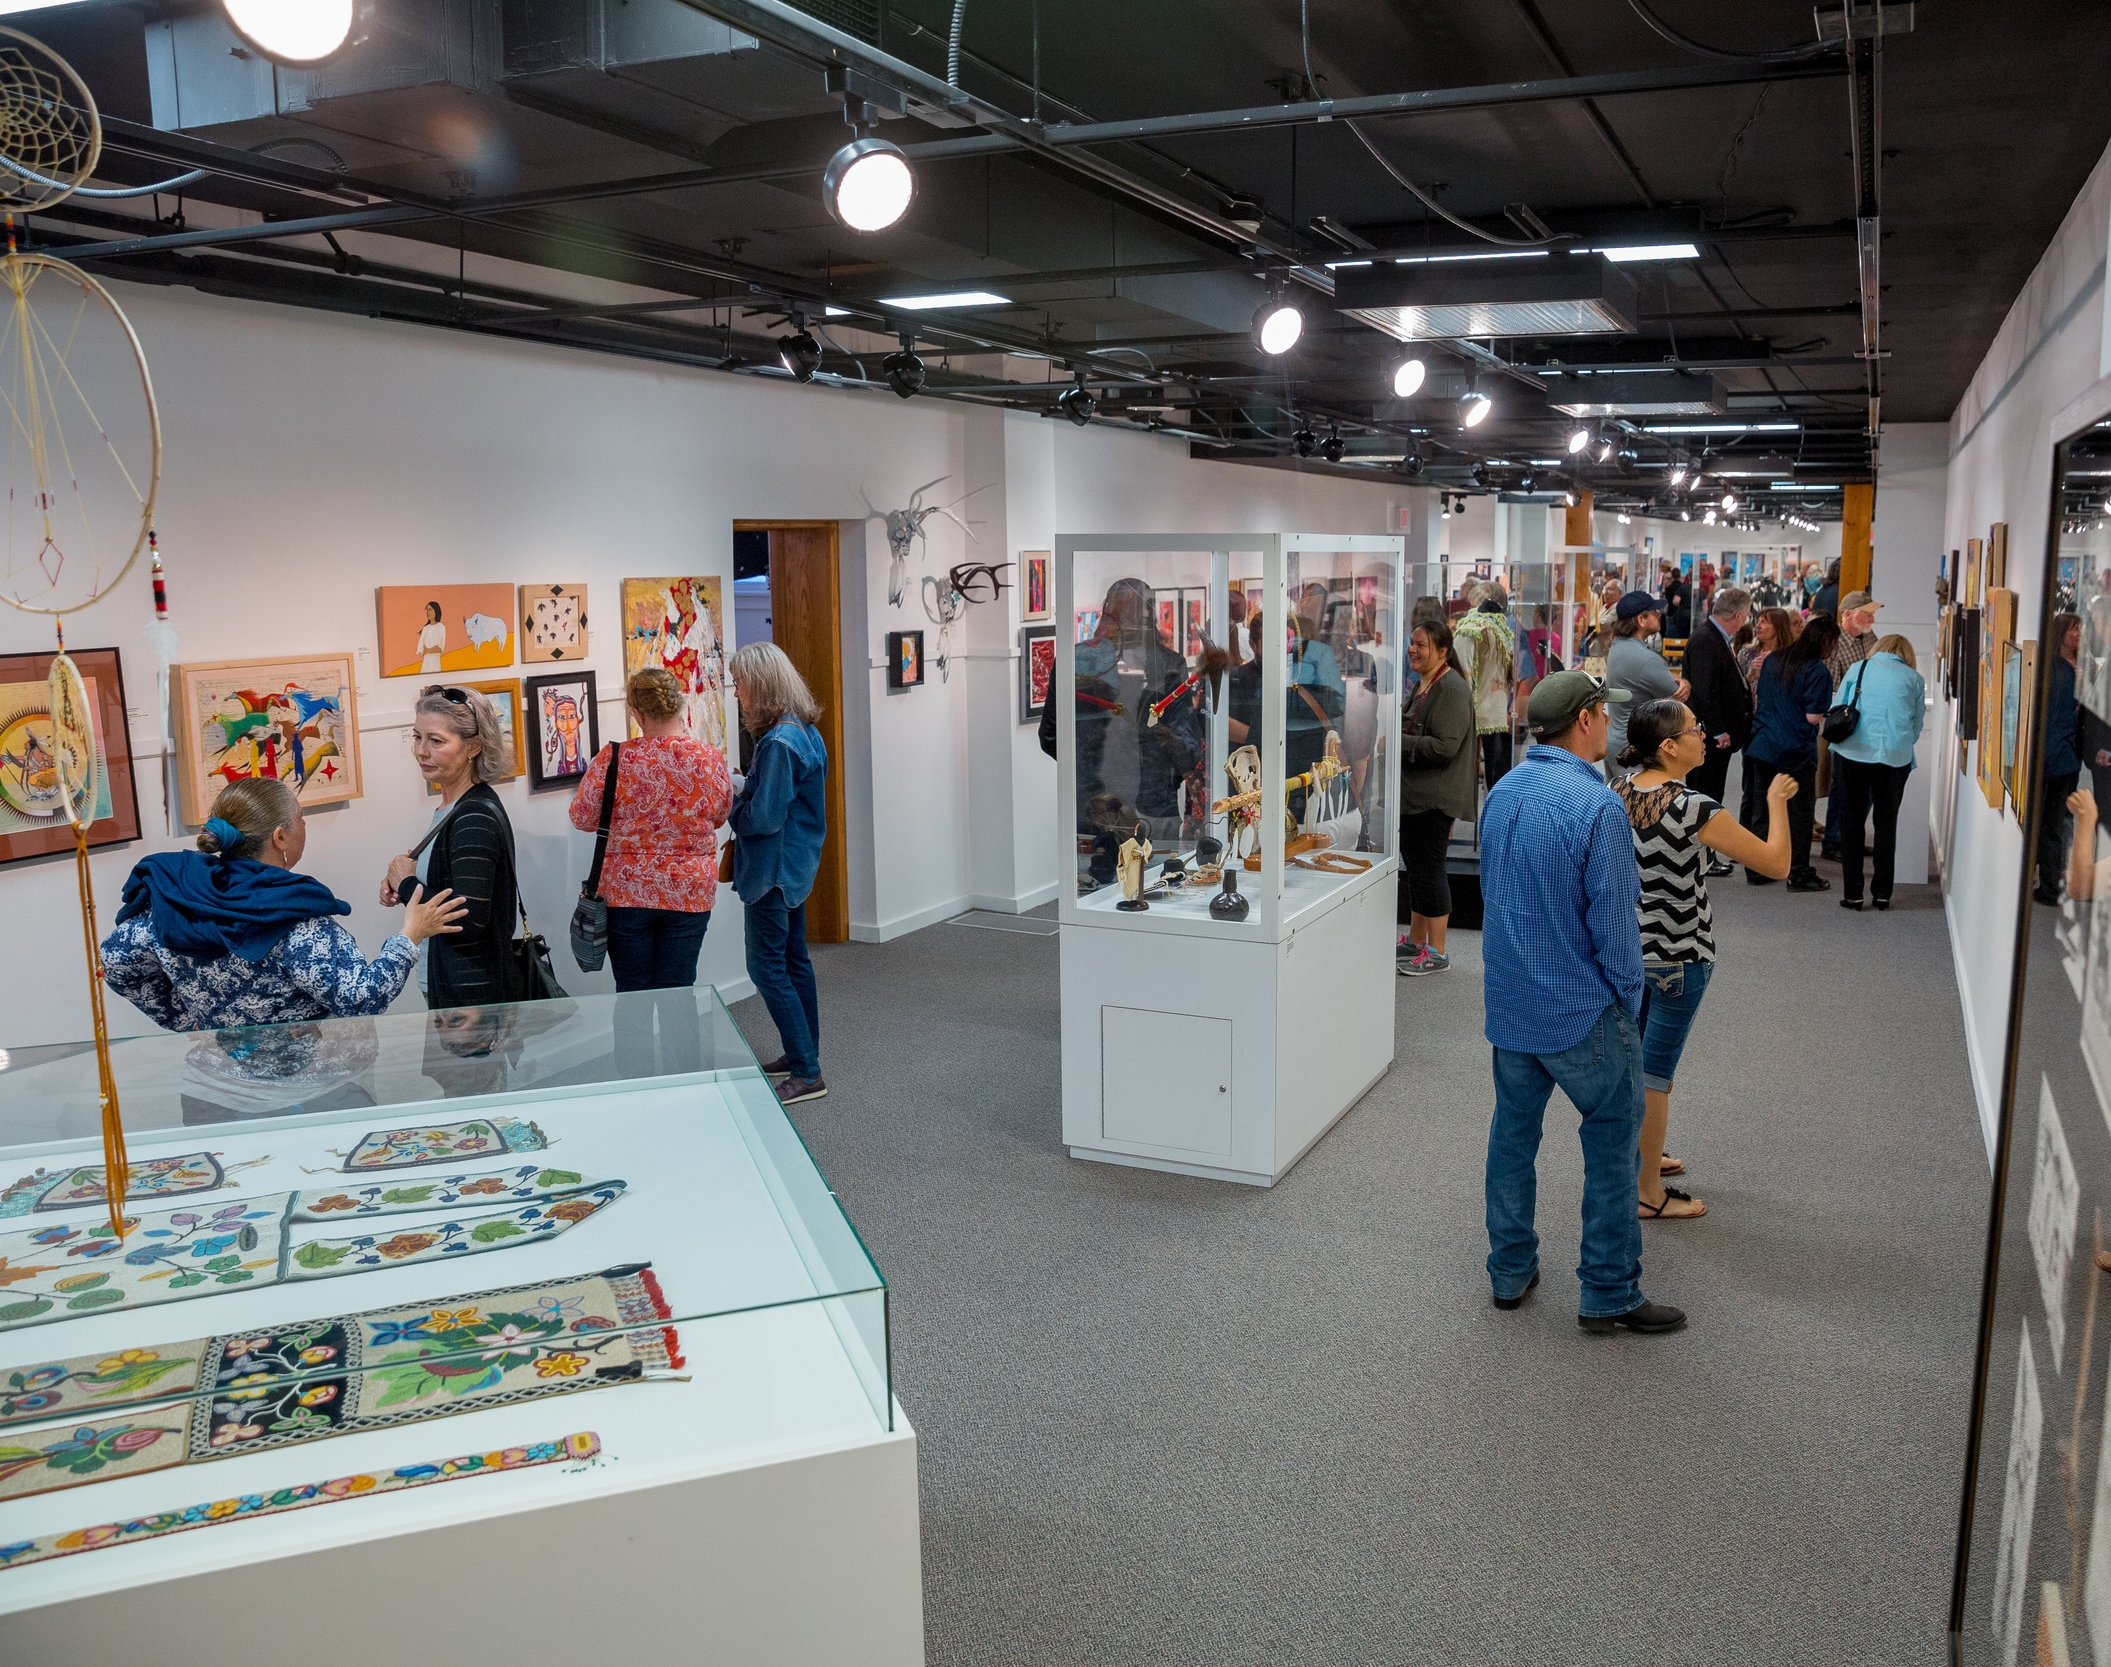 About the Show - The Heritage Center at Red Cloud Indian School hosts the Art Show for ten weeks each summer. All the artwork is for sale, with the proceeds used to support individual artists as well as the work of The Heritage Center.The start of the Art Show is marked with a special opening event will be held on Saturday, June 1. Participating artists will be on site to discuss their work and anyone is welcome to attend.Special Preview and Opening Event: Saturday, June 1, Noon to 5 pm.The gallery is open 7 days a week throughout the summer.The show will remain on display from June 2 through to August 11, Mon–Sat, 8 am to 6 pm, Sun 10 am to 5 pm.All visitors are free to visit the gallery and gift shop during The Heritage Center's regular hours. Tours of Red Cloud's historic campus are also available.